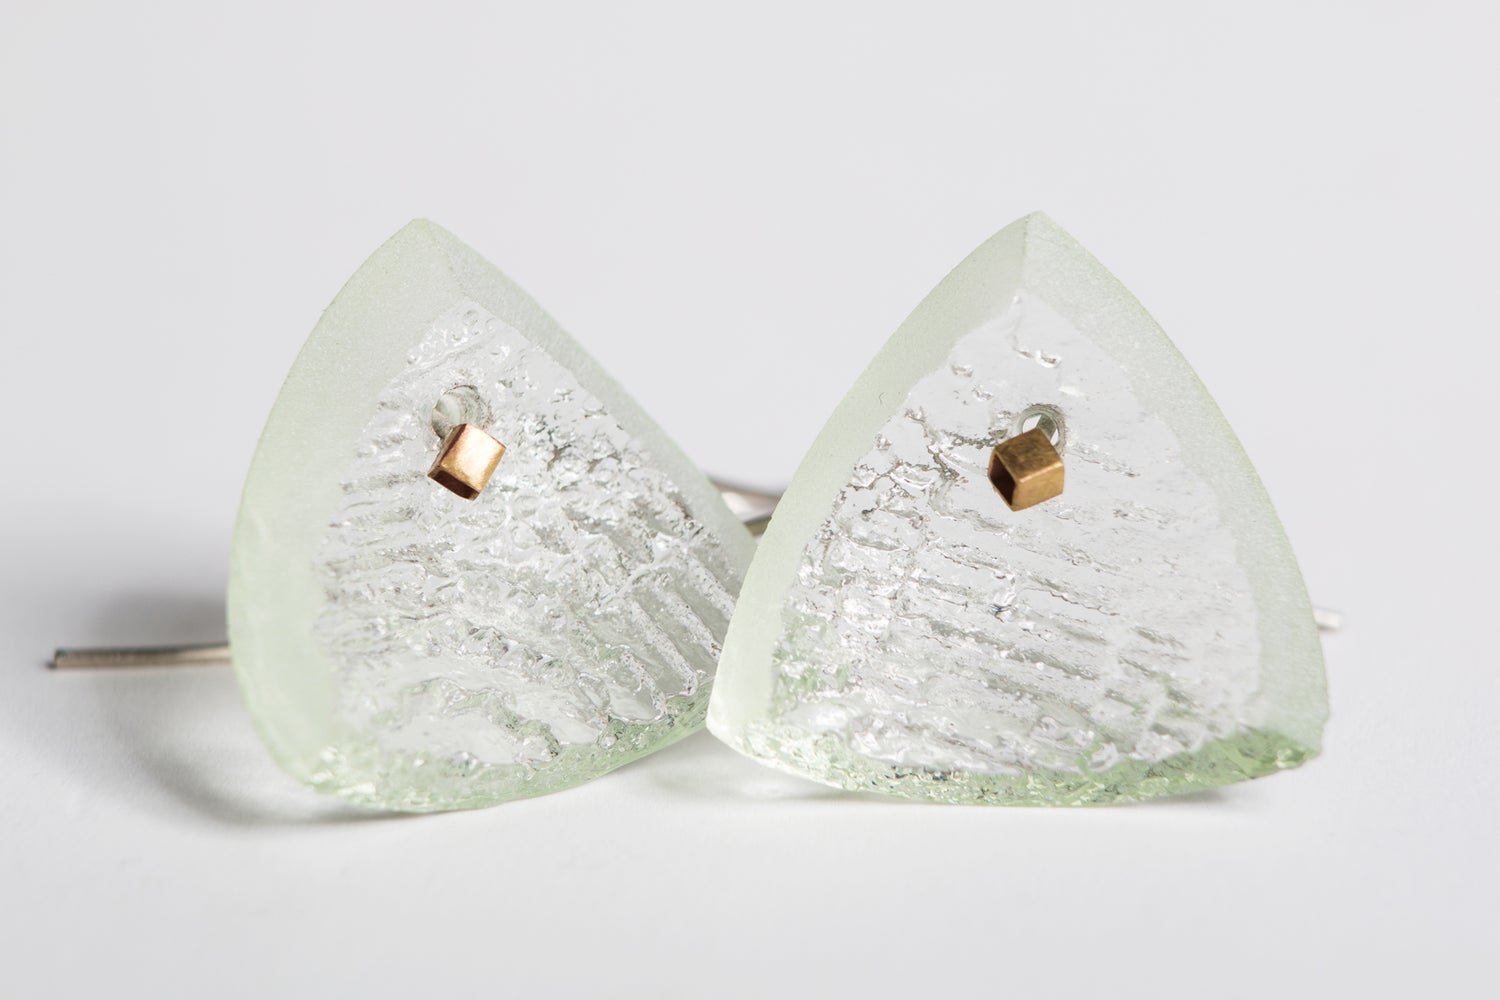 Image of 'Inside the Print' Geometric CAST Glass earrings with Sterling silver drop.